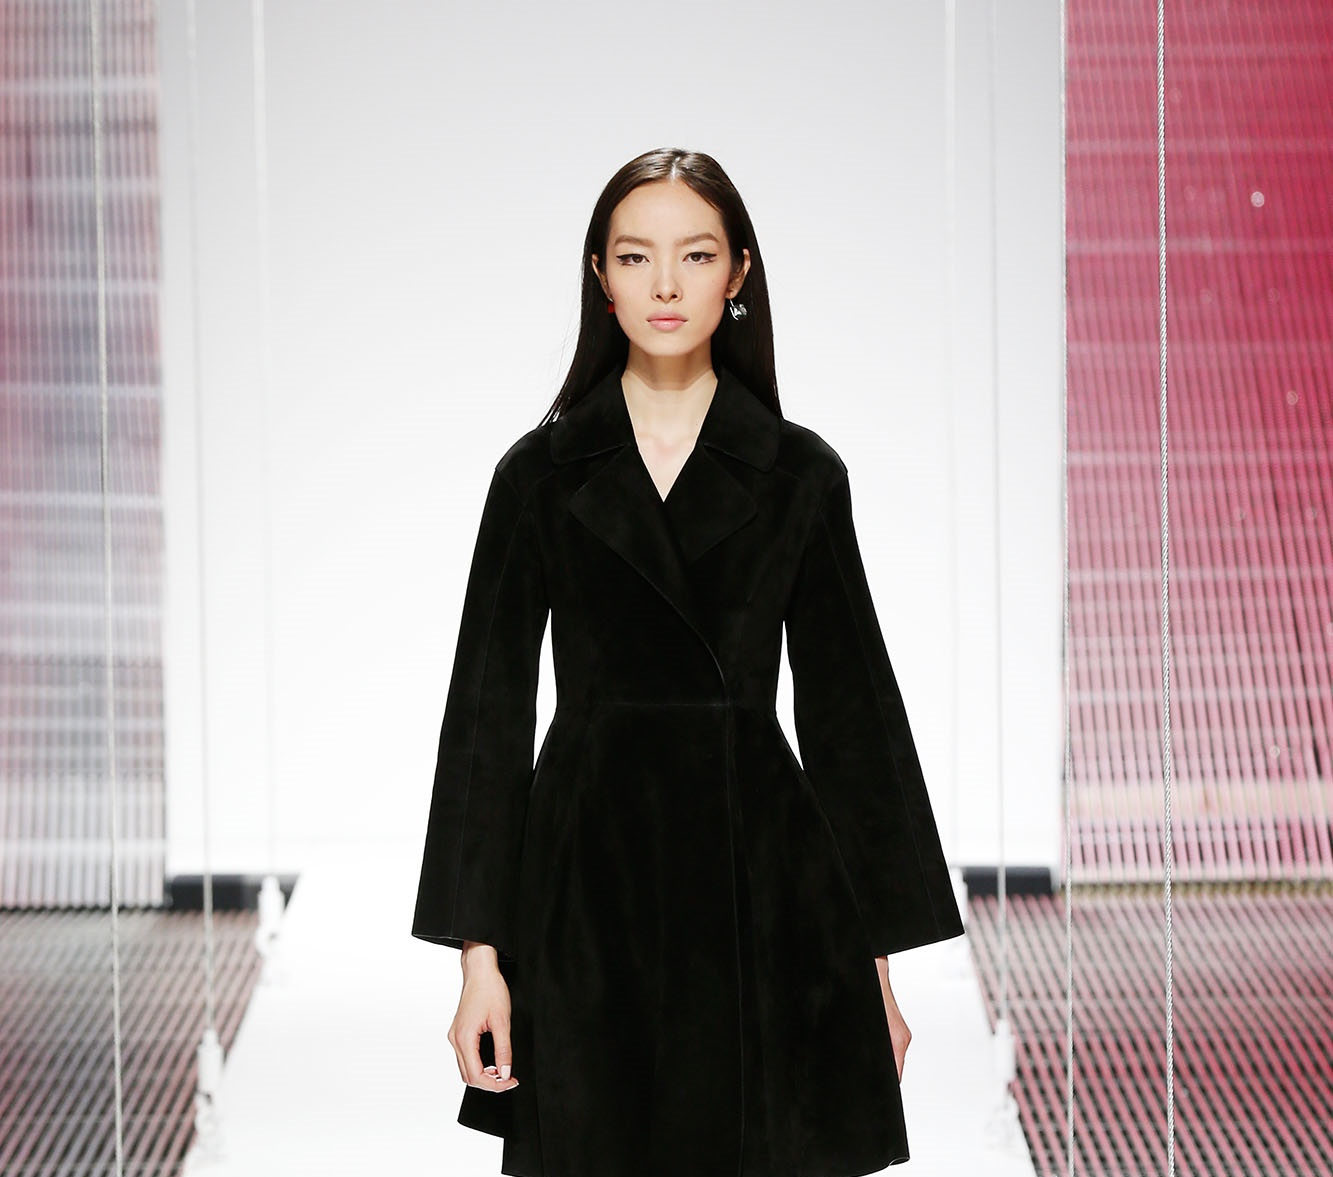 christian-dior-fall-winter-cruise-collection (6)